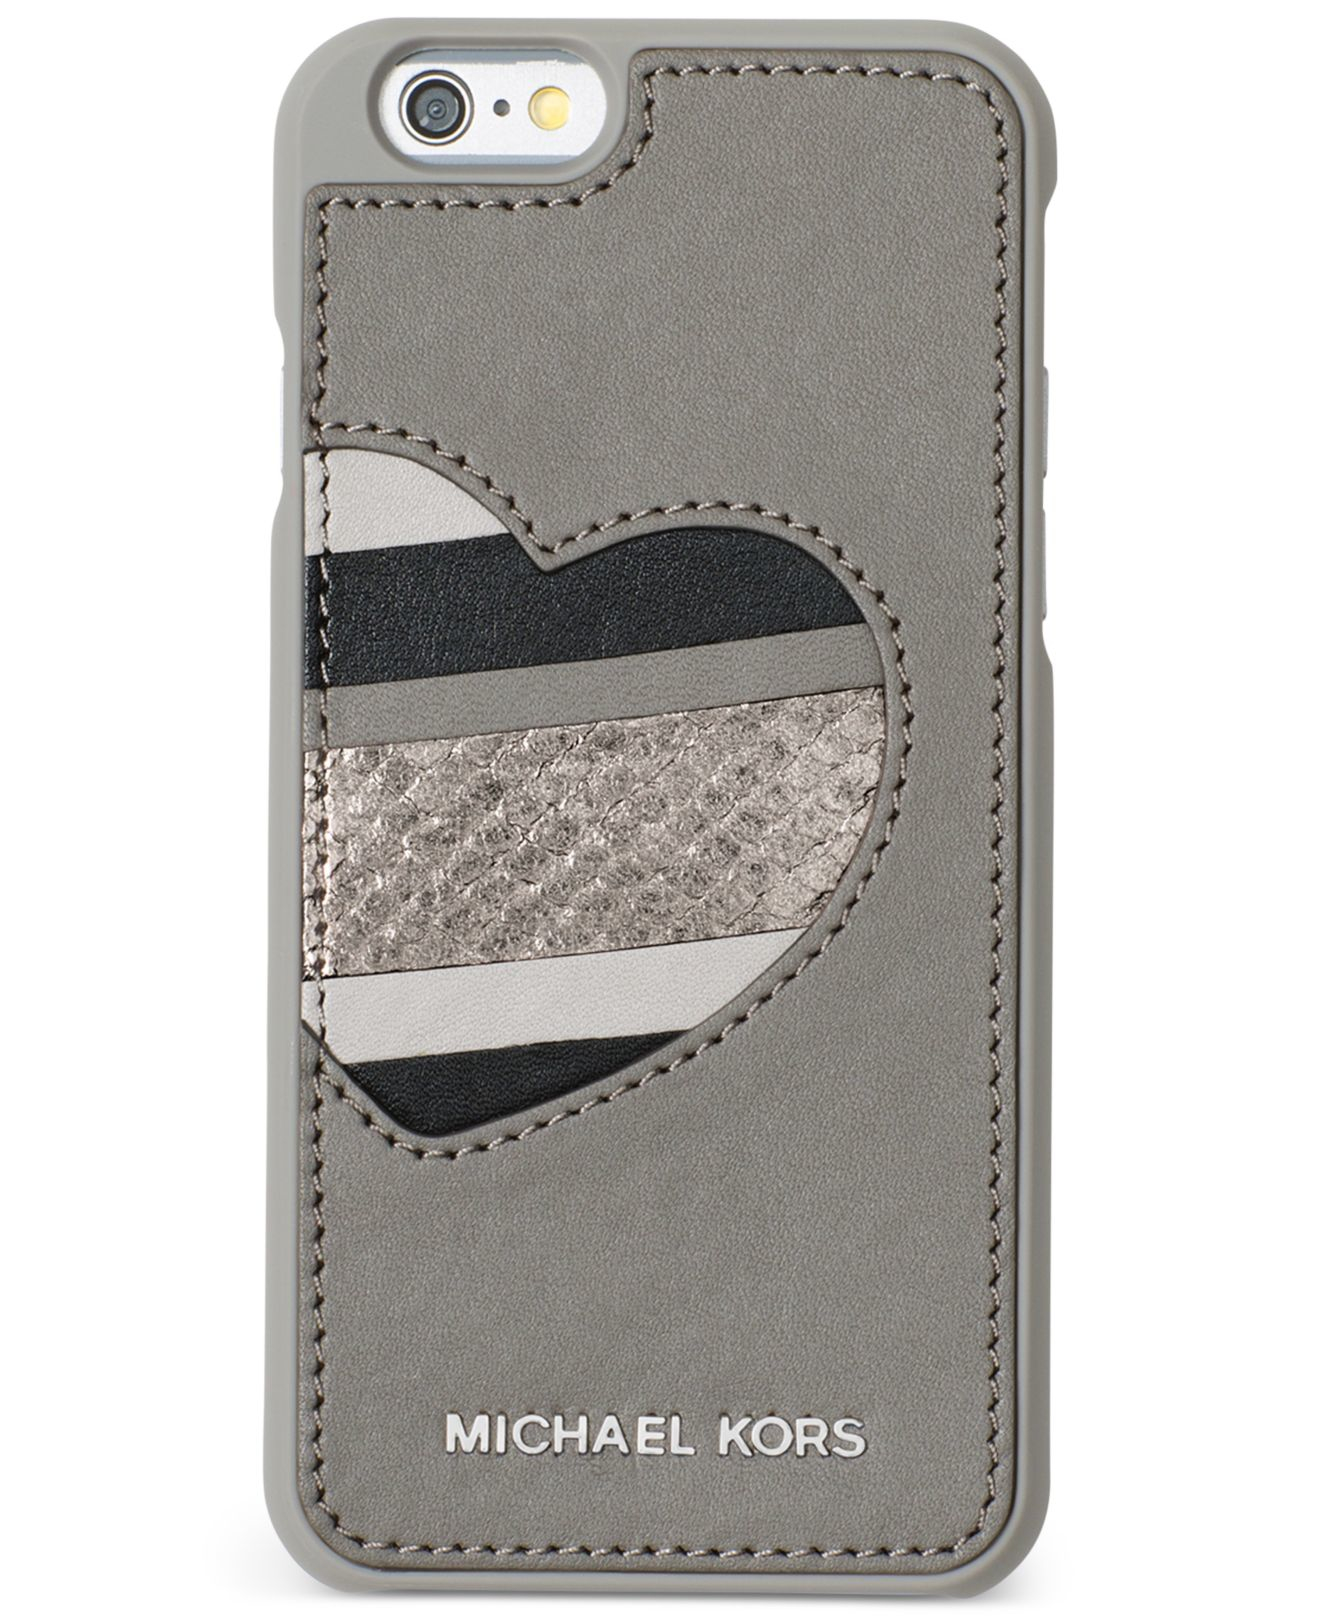 michael kors iphone lyst michael kors michael electronics iphone 6 cover in gray 567